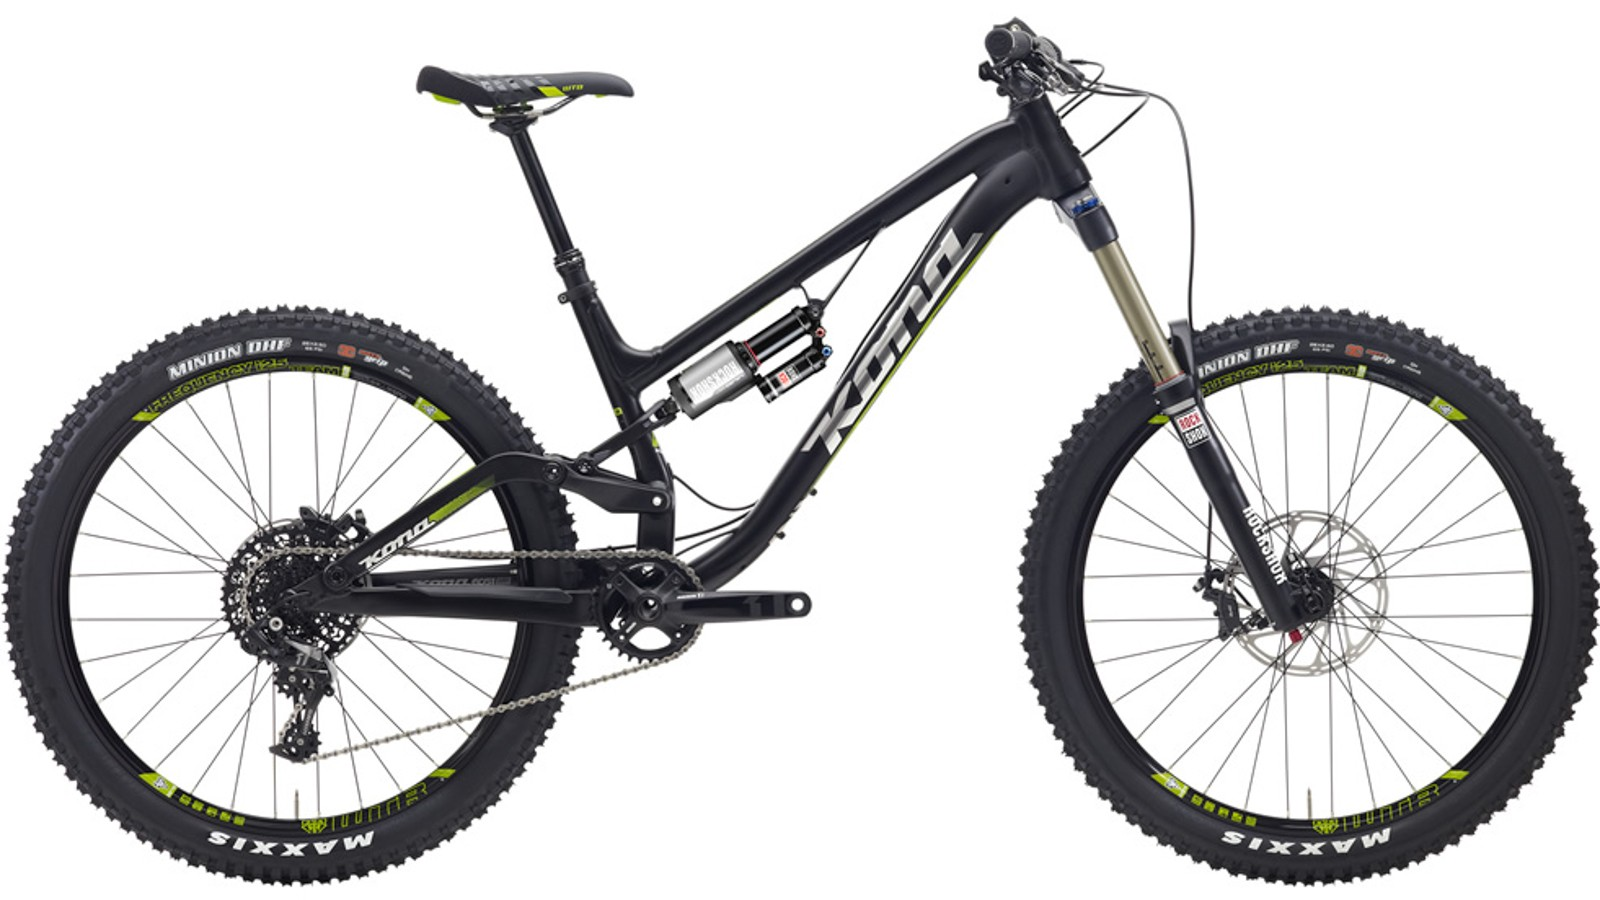 The new Process 167 proves that the 26in wheel isn't dead yet. With 167mm of rear wheel travel, this bike is made for abusive riding